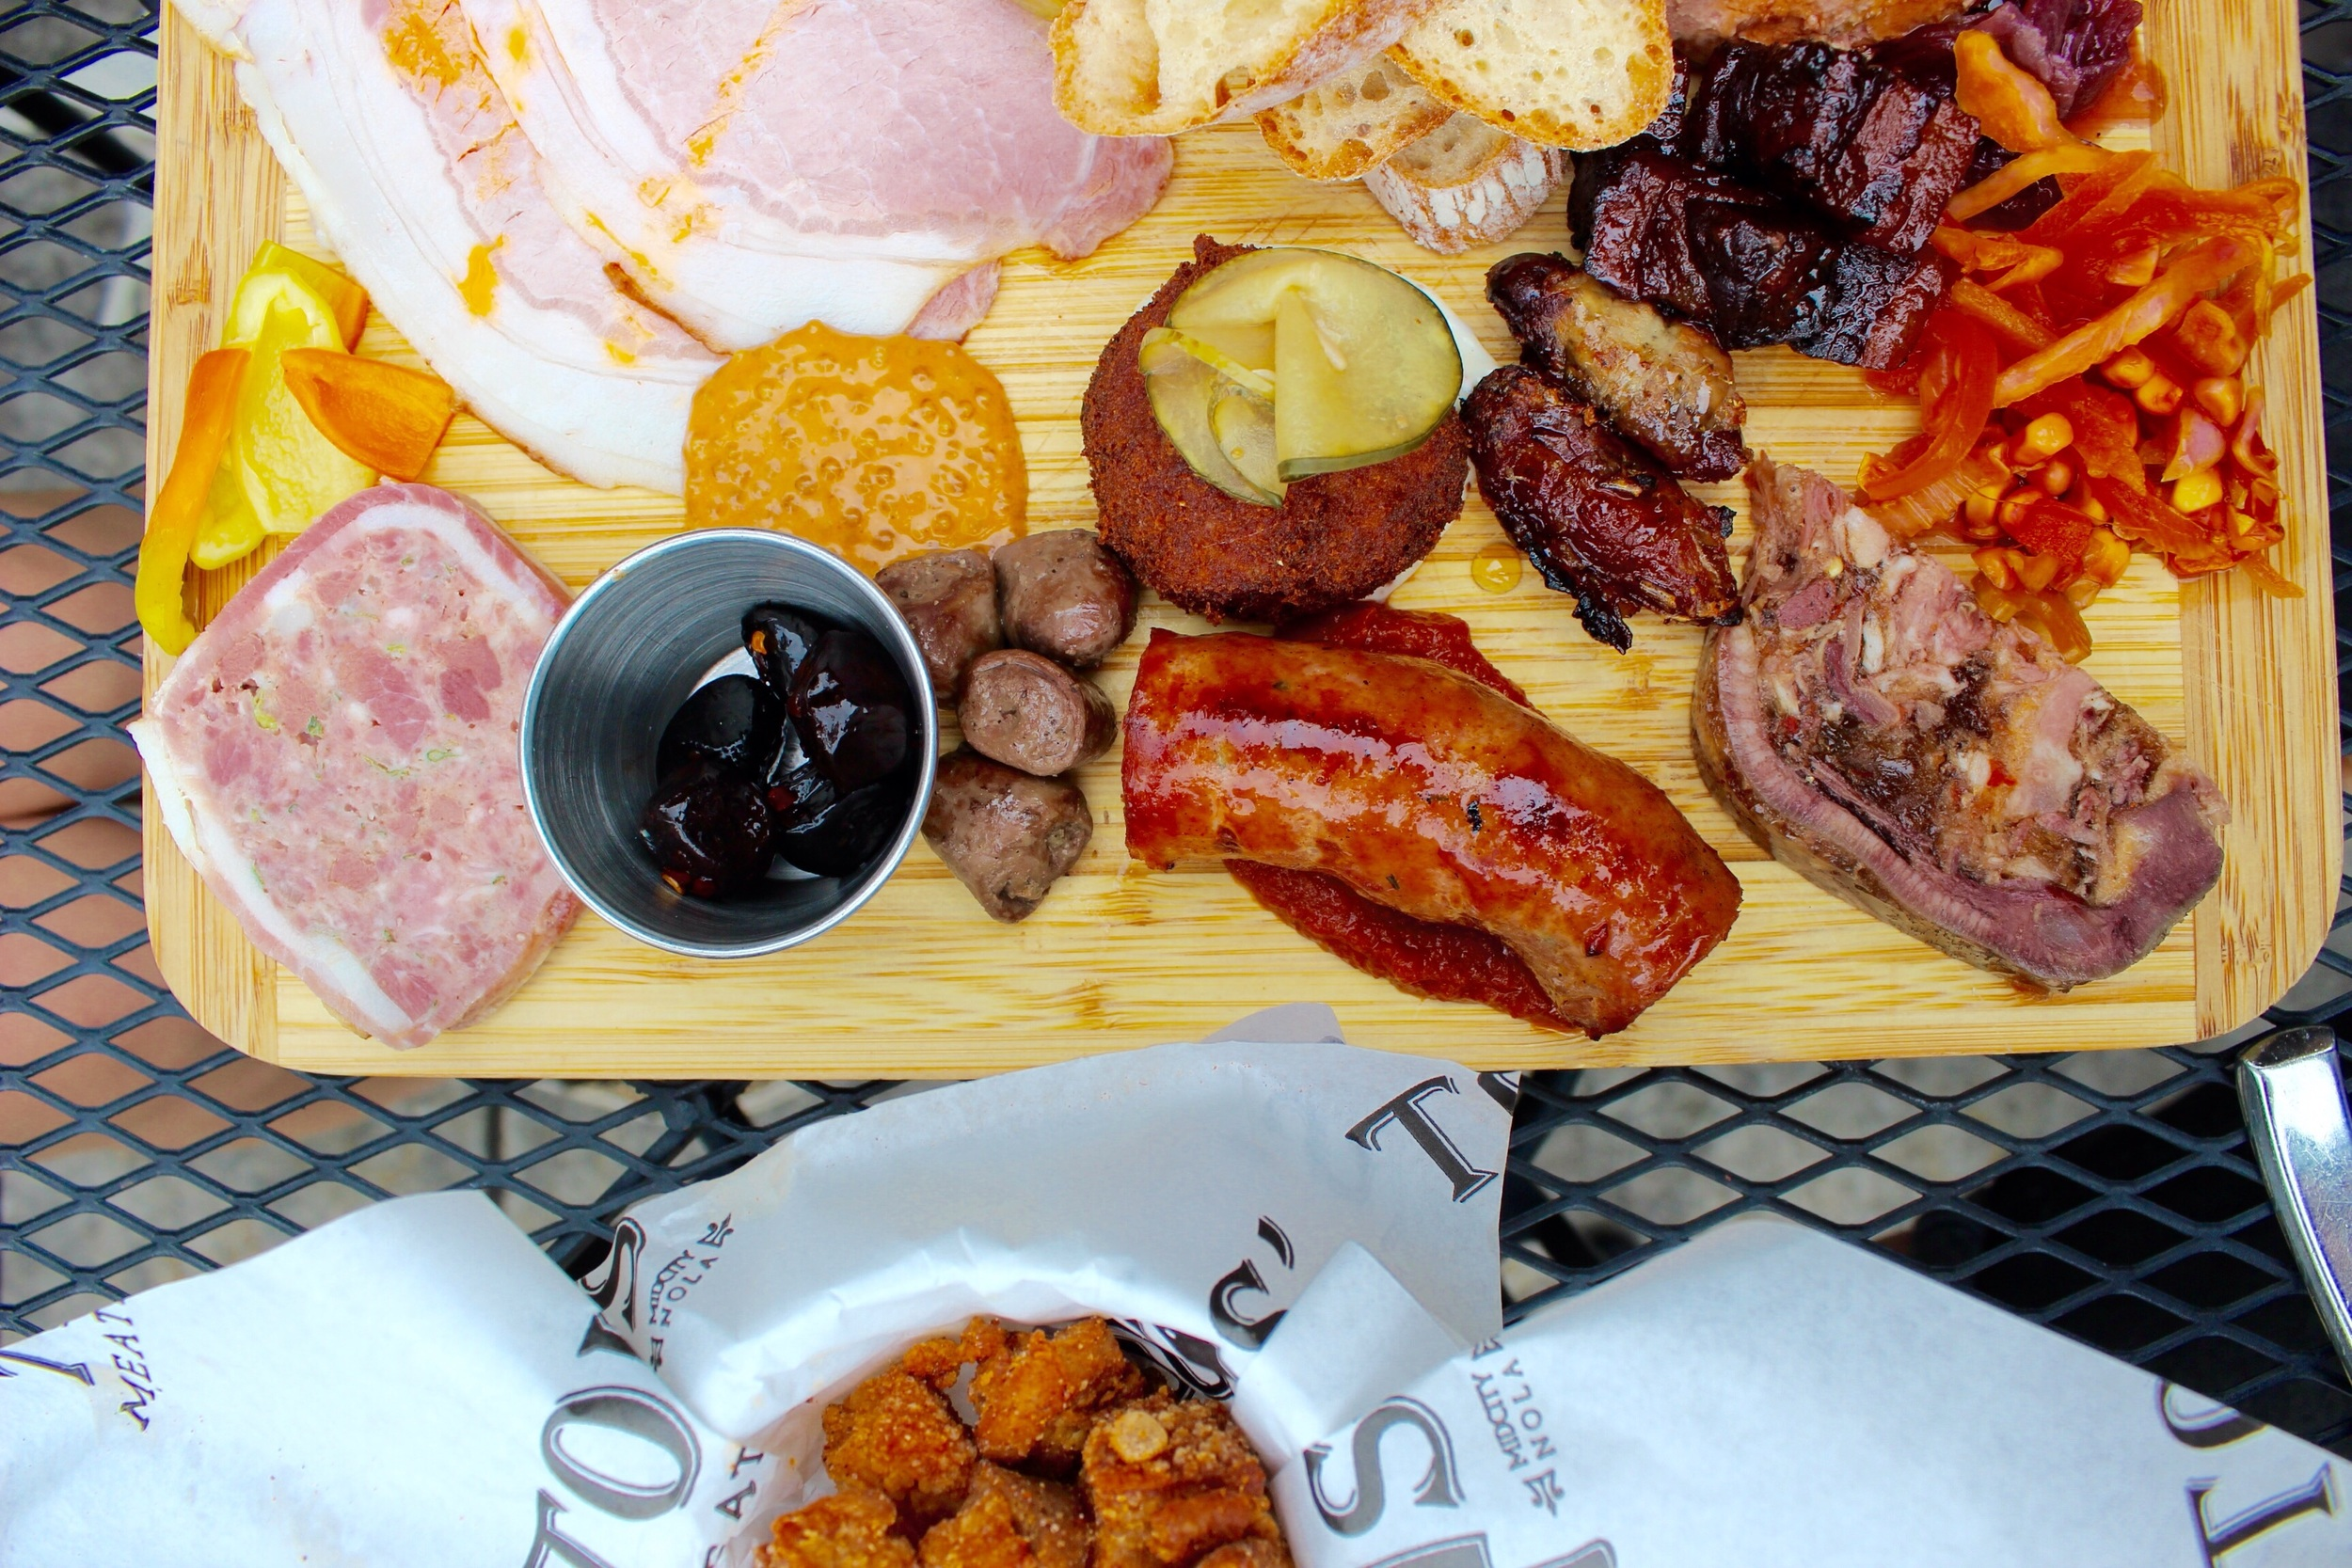 Meatery board at Toup's